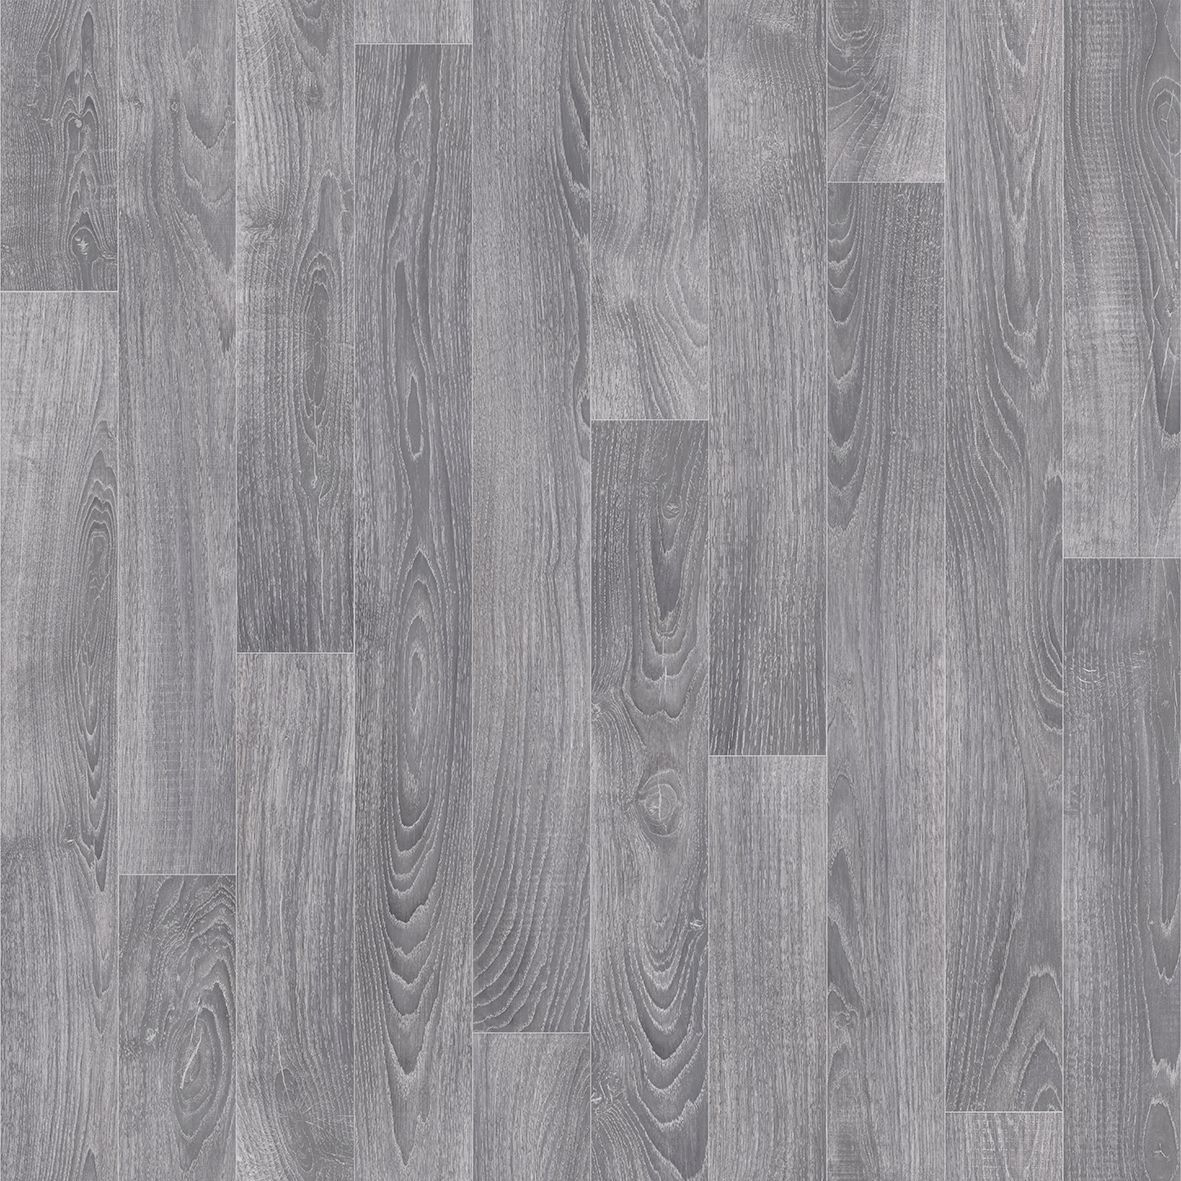 B q grey vinyl floor tiles thefloors co for Grey linoleum flooring